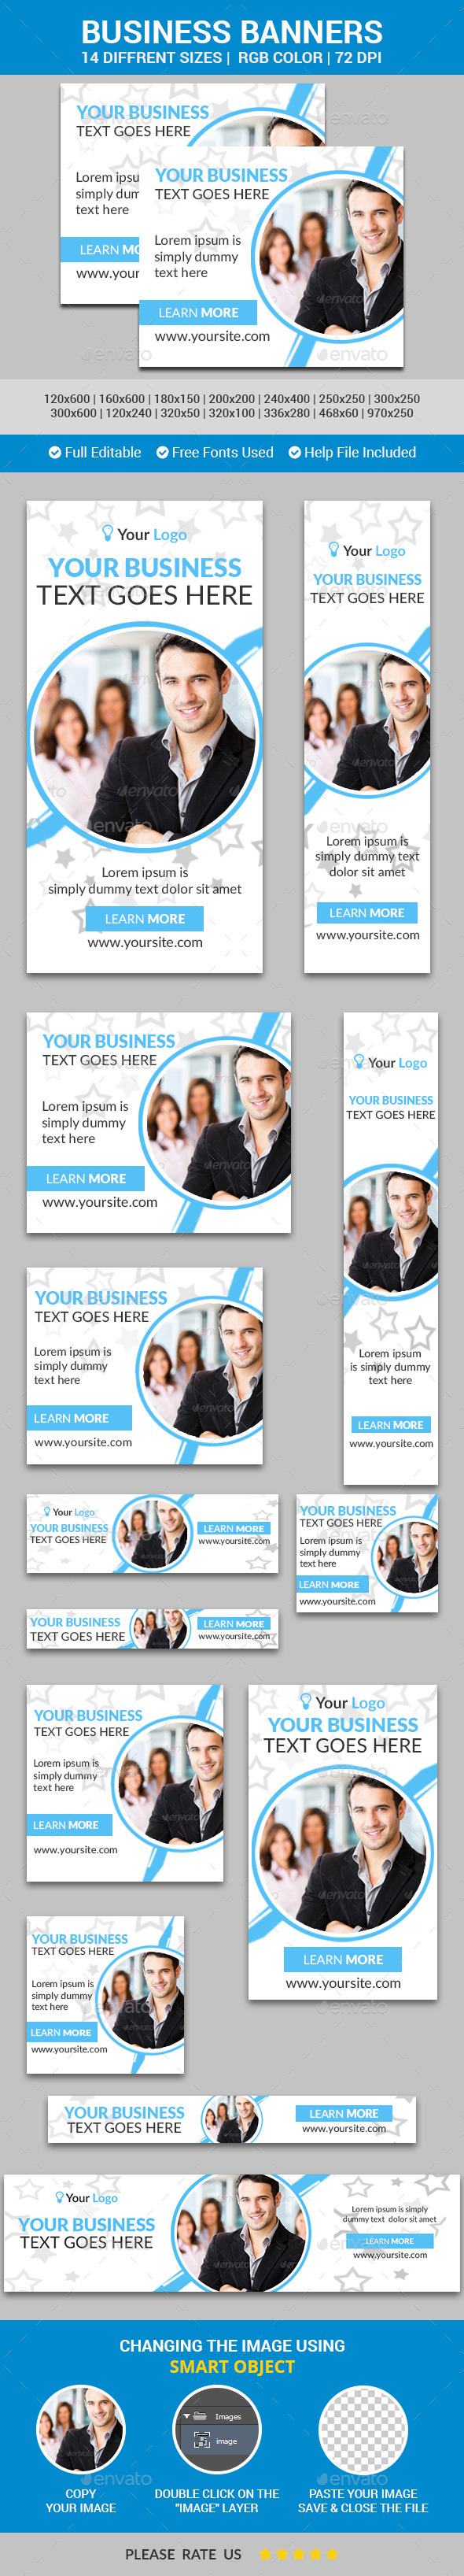 Business Banners v9 - Banners & Ads Web Elements